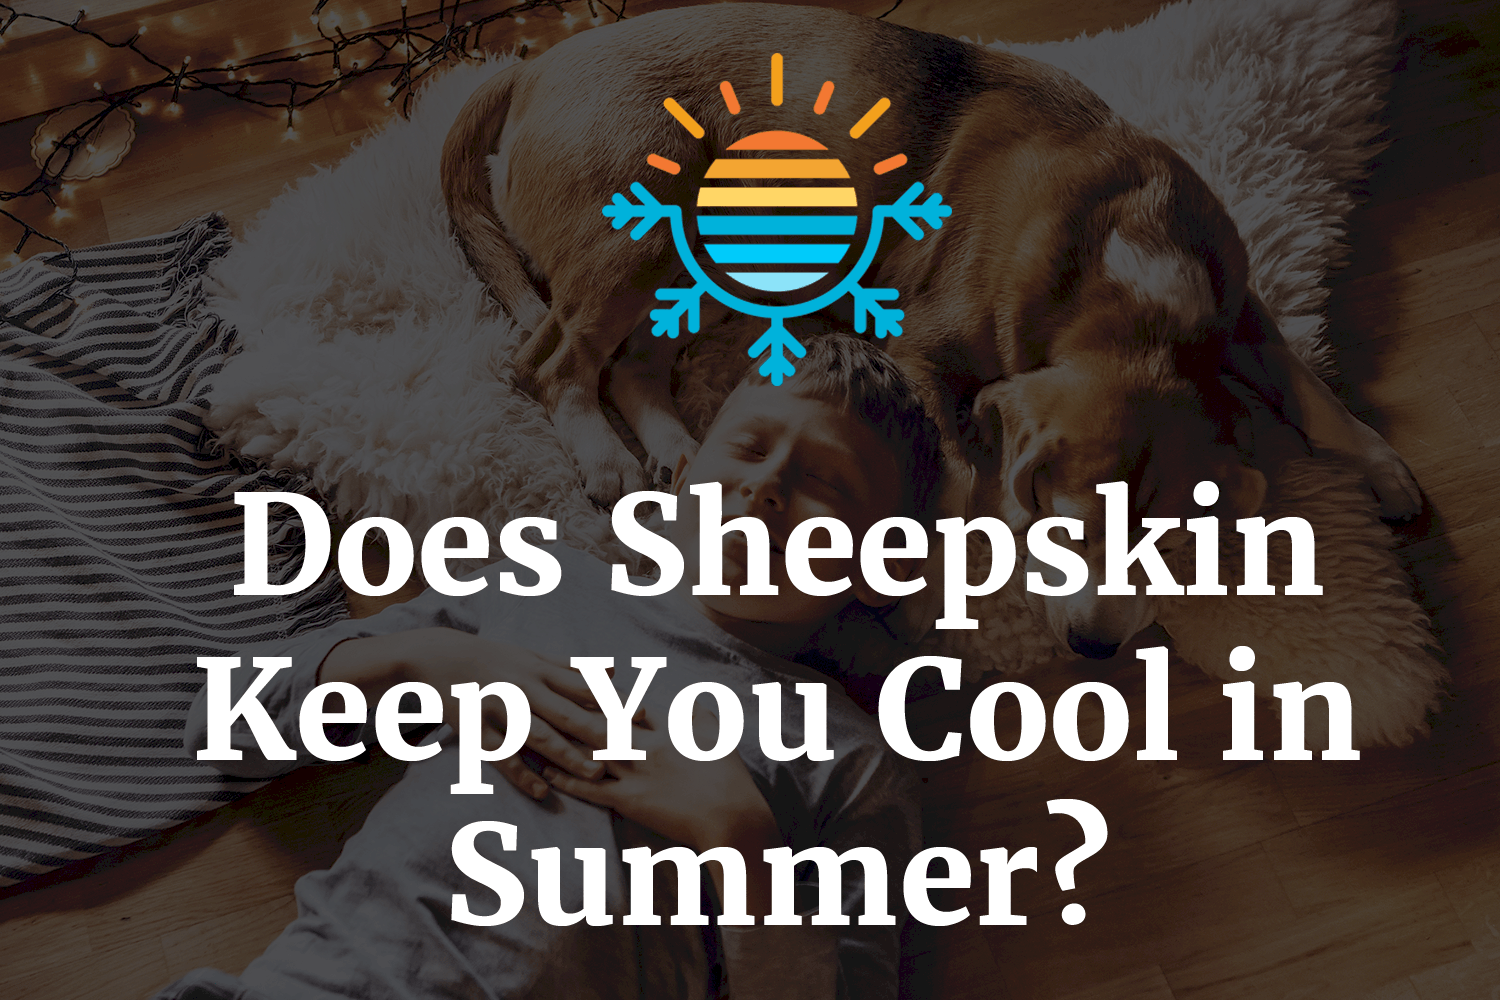 Does Sheepskin Keep You Cool in Summer?